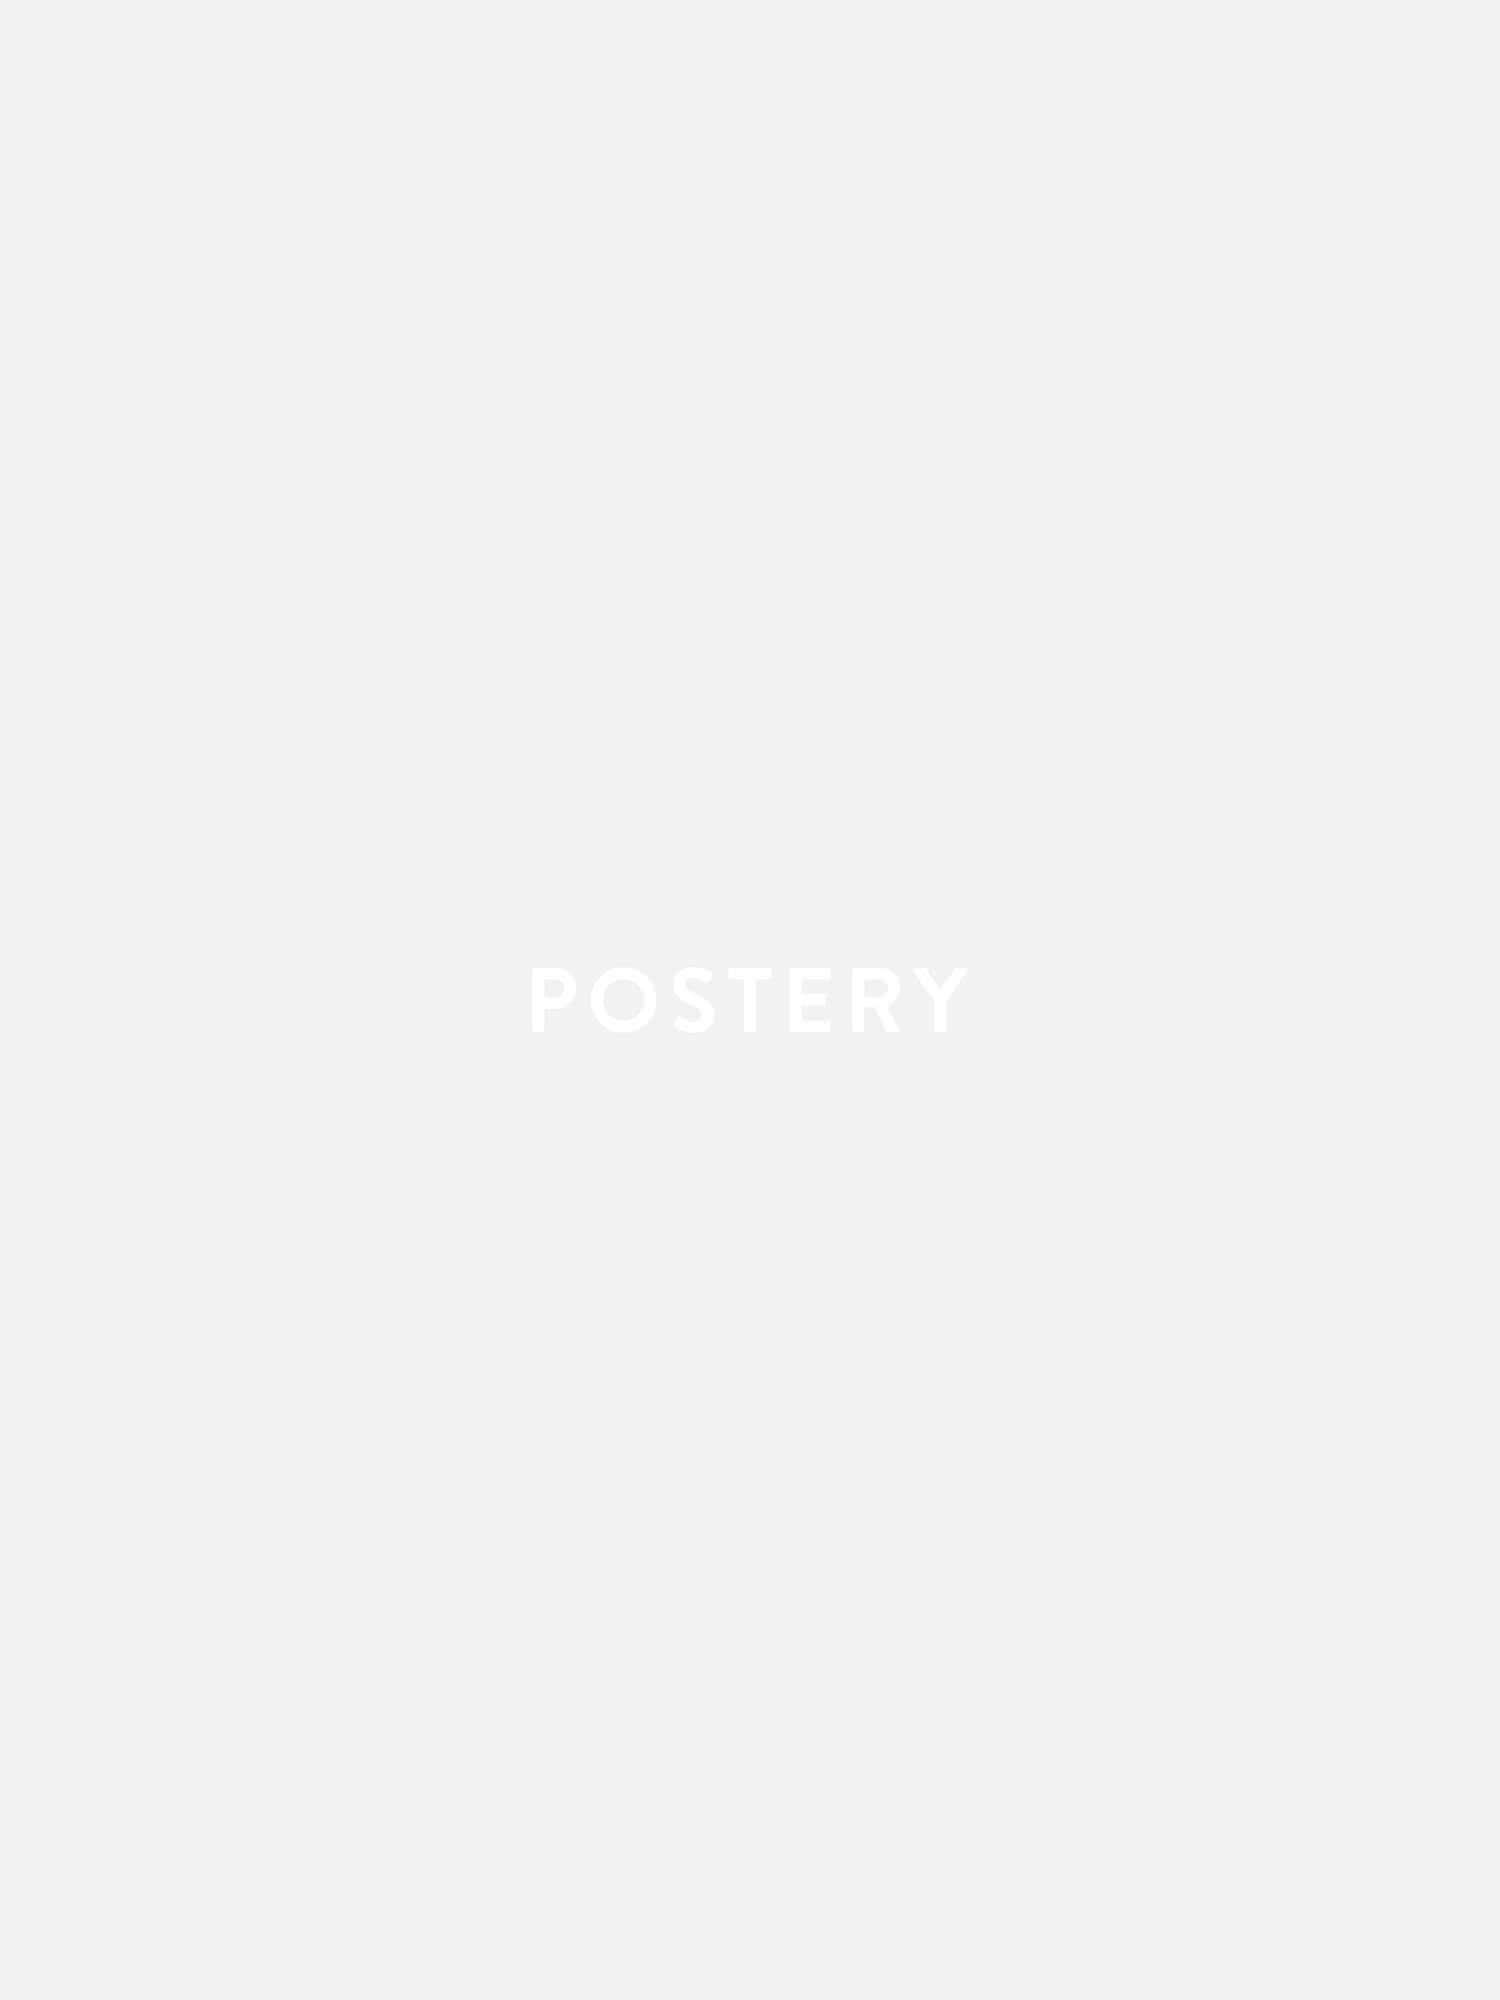 Gallery Wall #6850